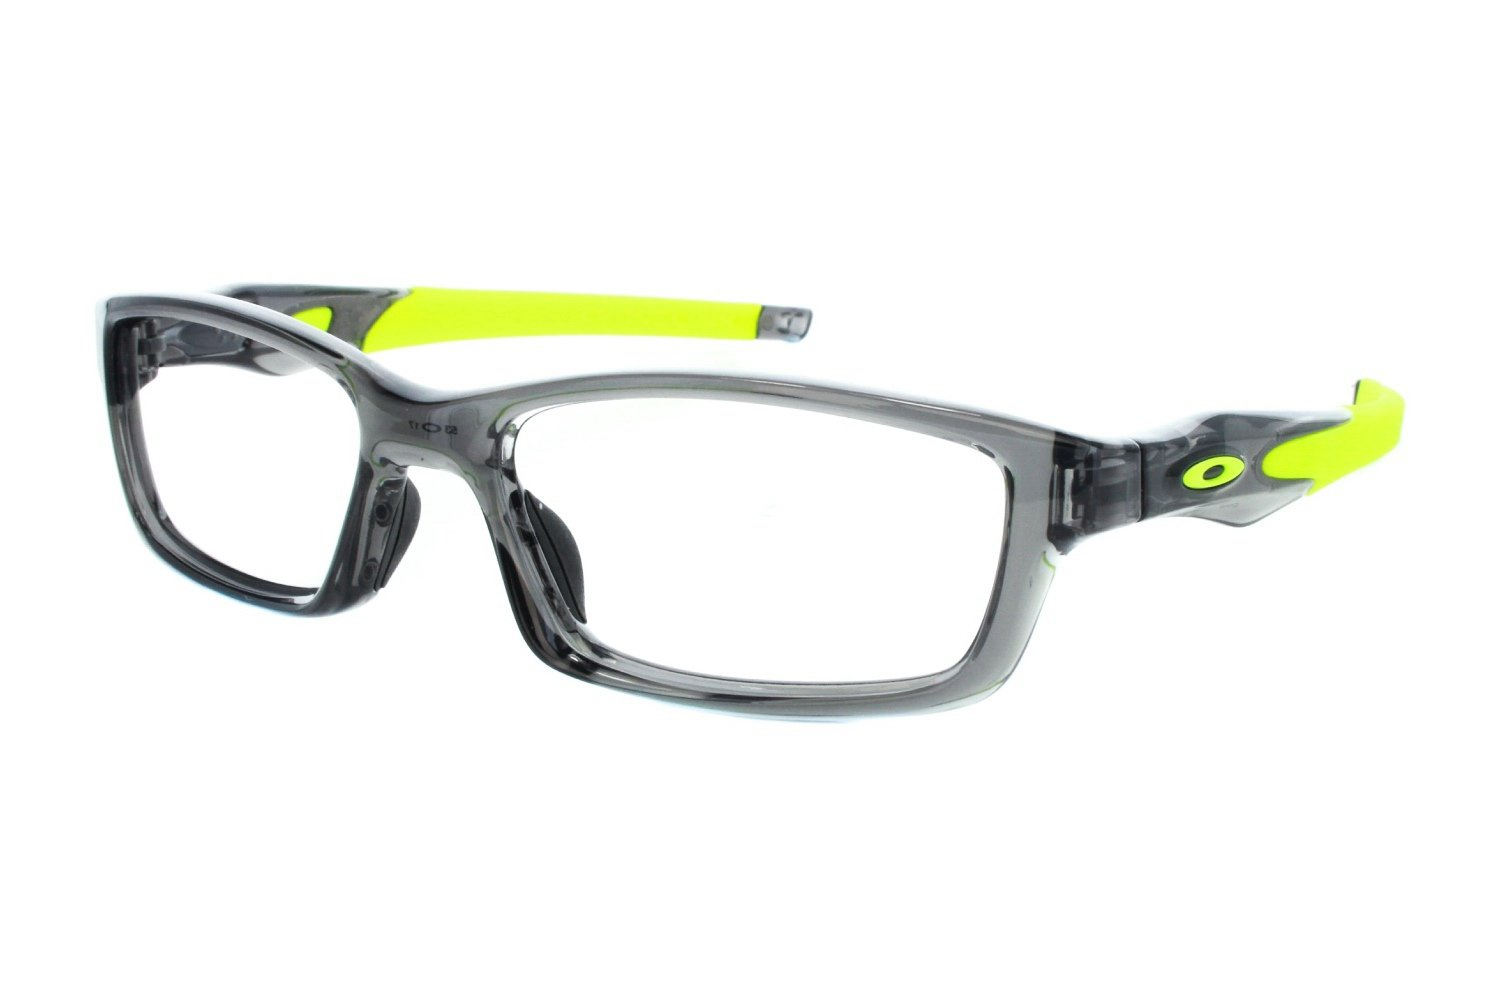 Amazon.com: Oakley CROSSLINK (53) anteojos de sol: Health ...